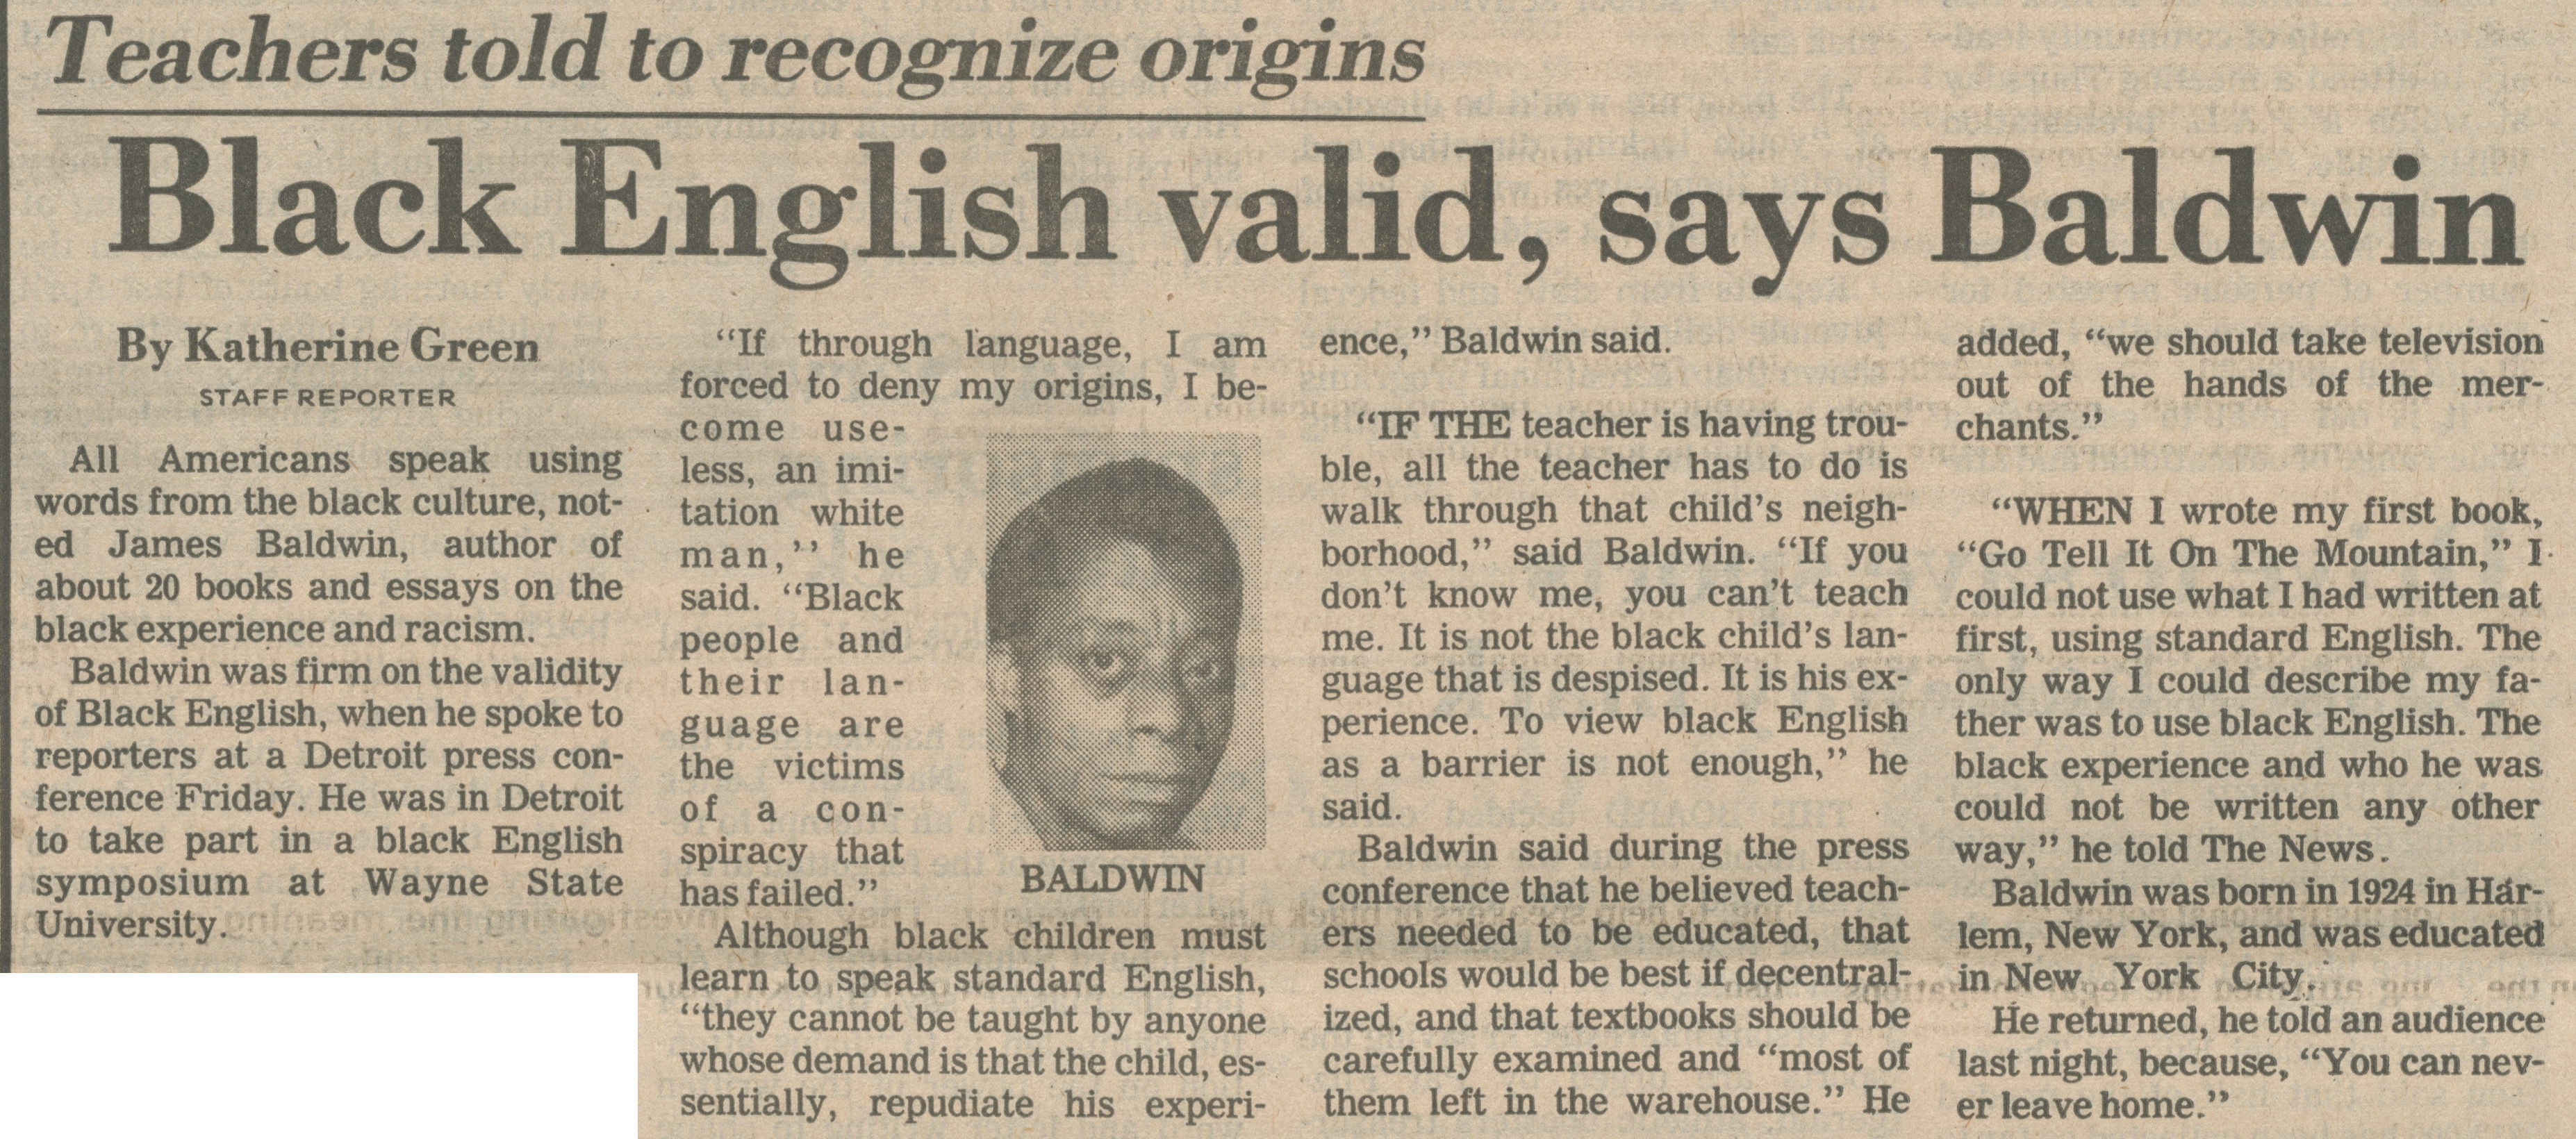 Teachers Told To Recognize Origins ~ Black English Valid, Says Baldwin image